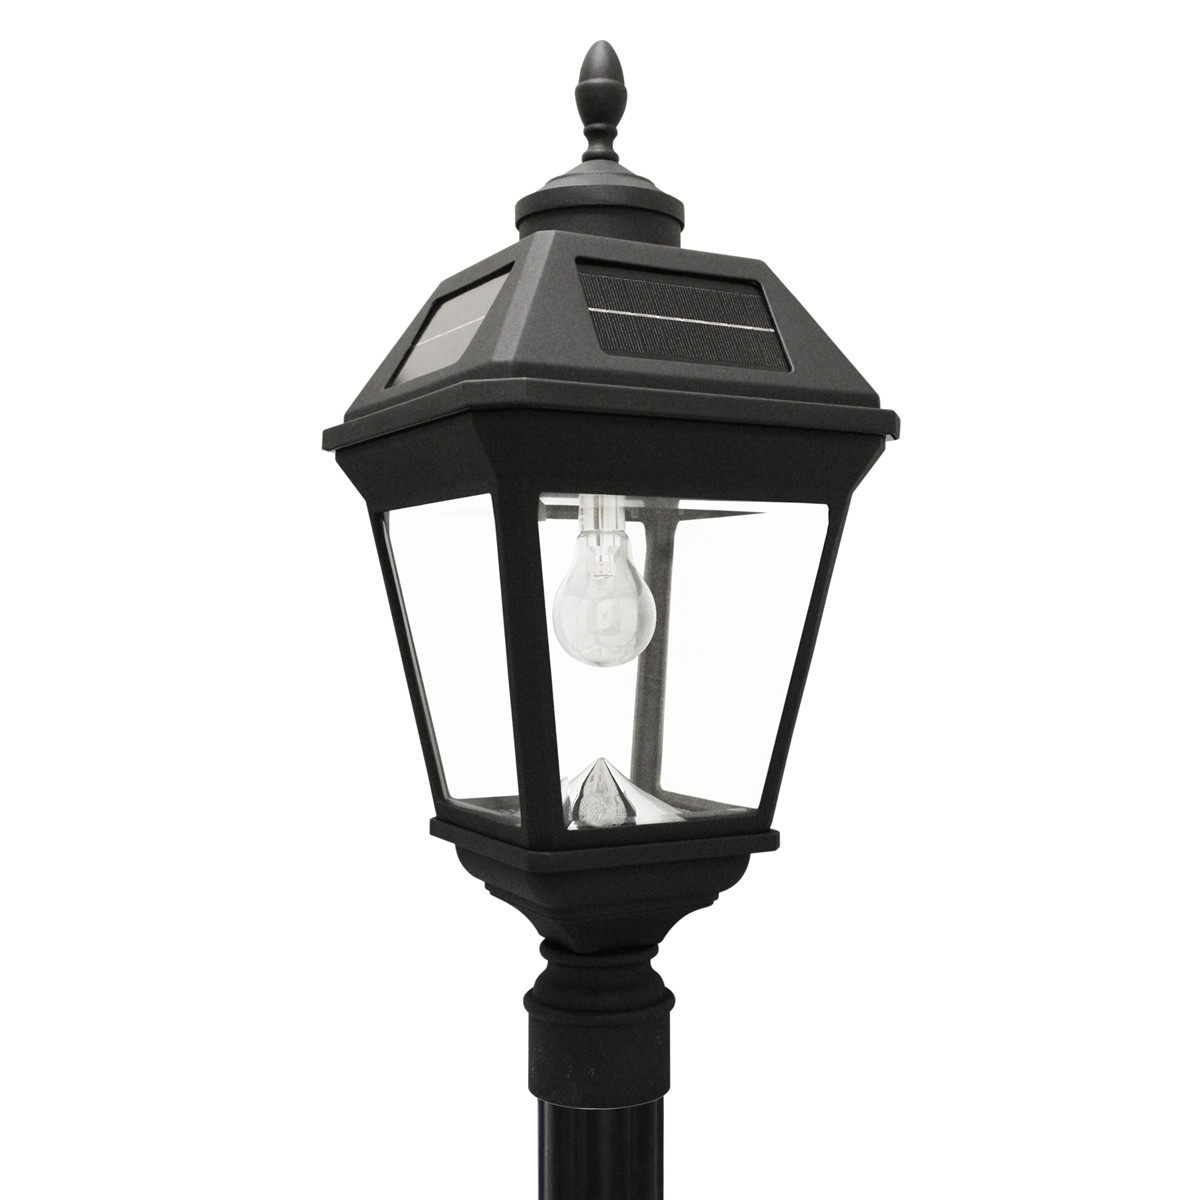 Best ideas about Lamp Post Lights . Save or Pin IMPERIAL Bulb Solar Lamp and Single Lamp Post with GS Now.